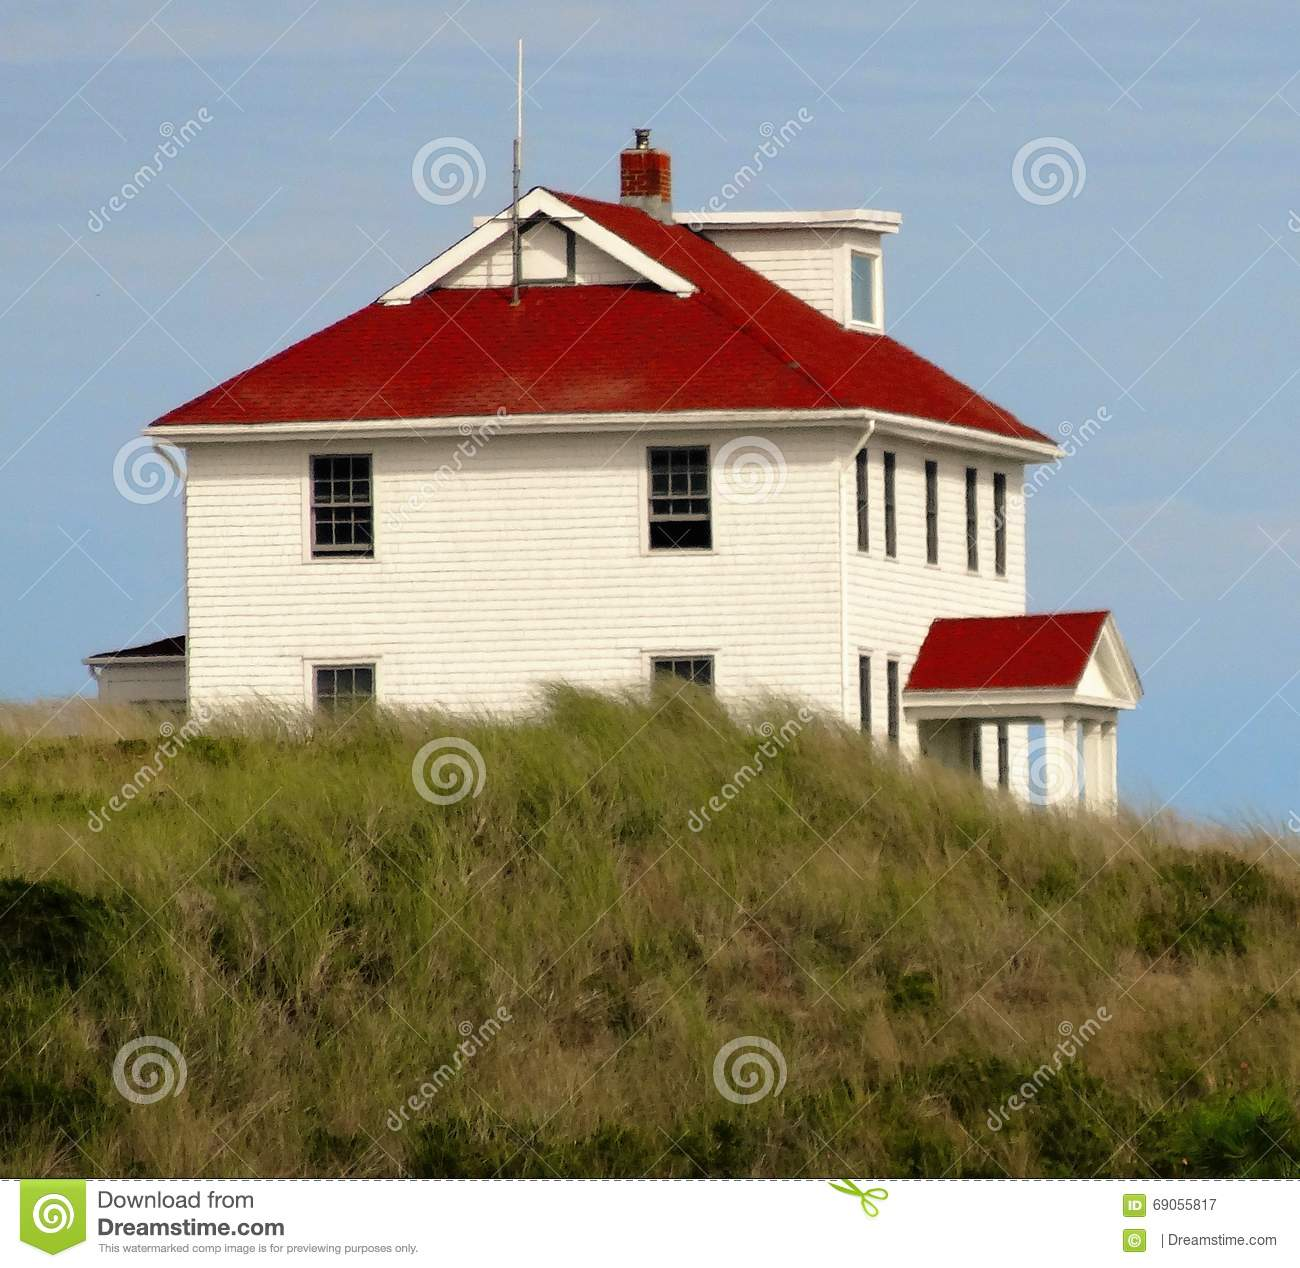 Beach House At The Dunes: Red Roof Stock Photo